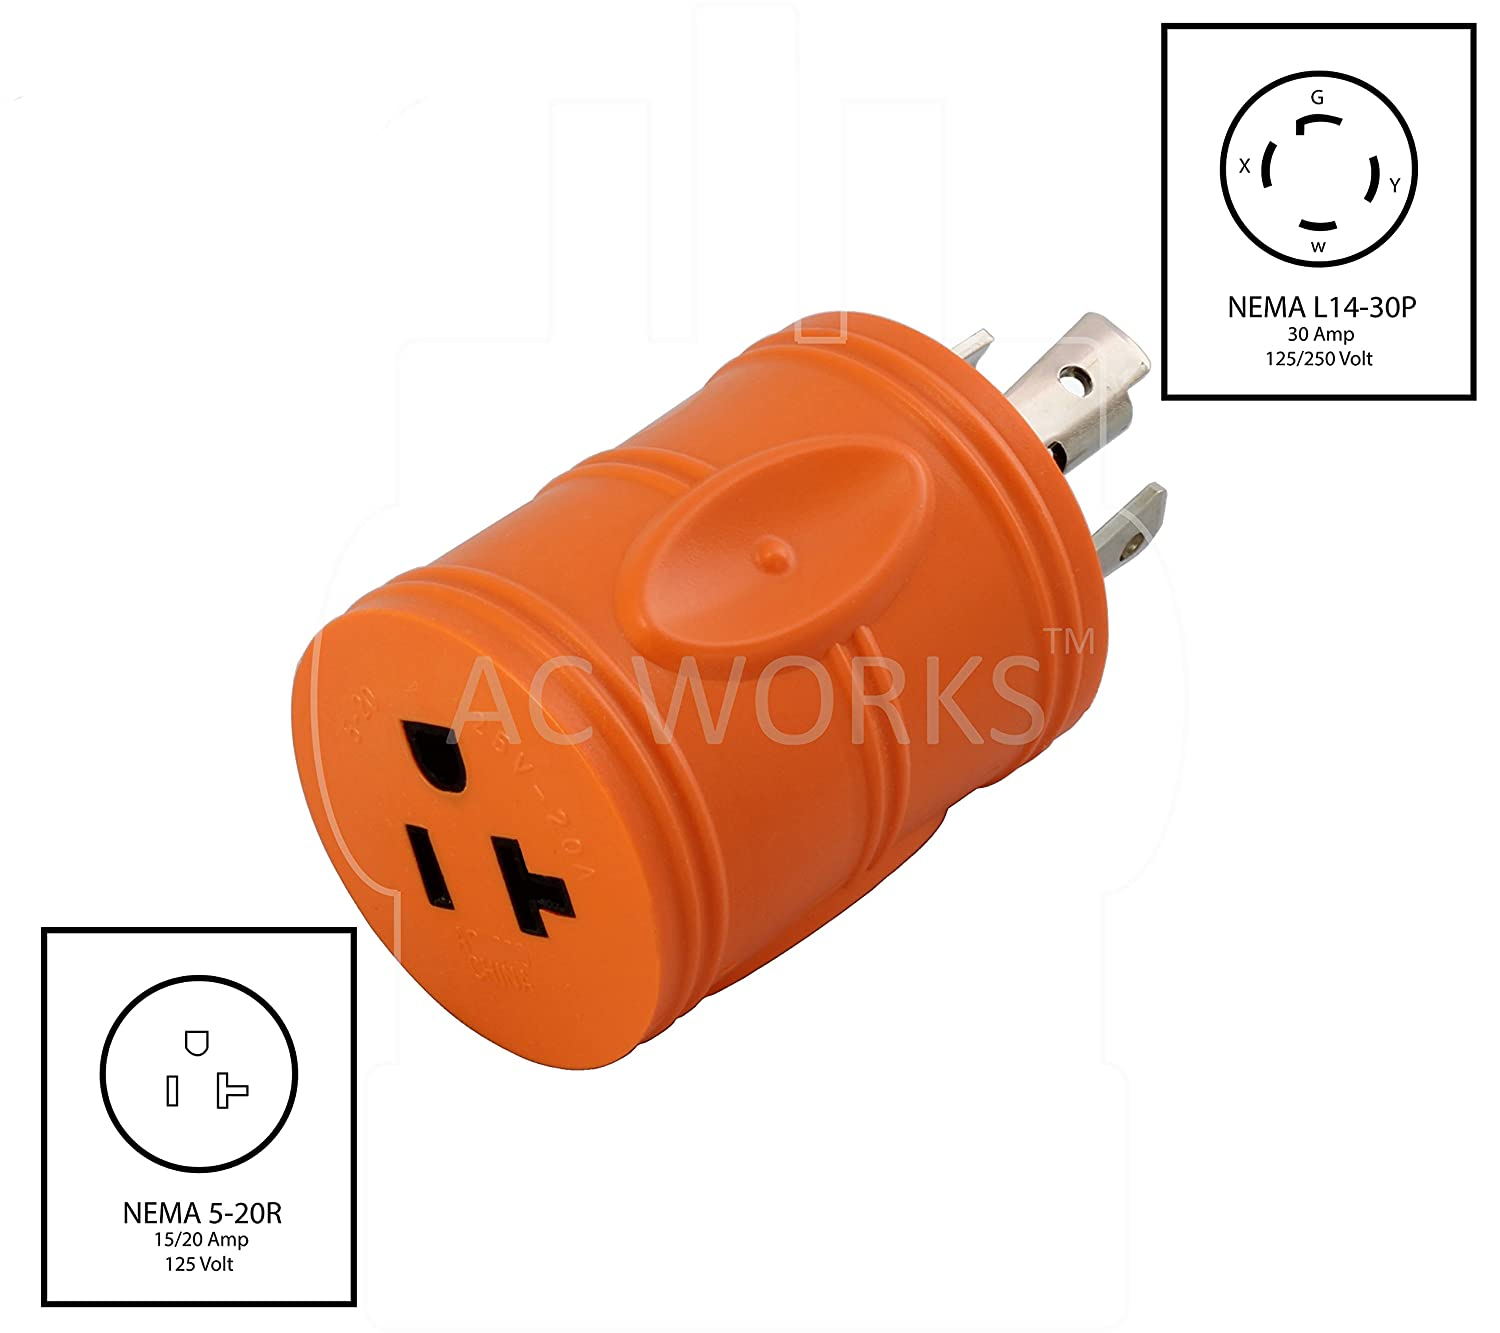 Ac Works Adl1430520 Locking Adapter L14 30p 30amp 125 250volt 4 30 Wiring Diagram Schematic Prong Male Plug To 5 15 20r Regular Household 20amp Female Connector